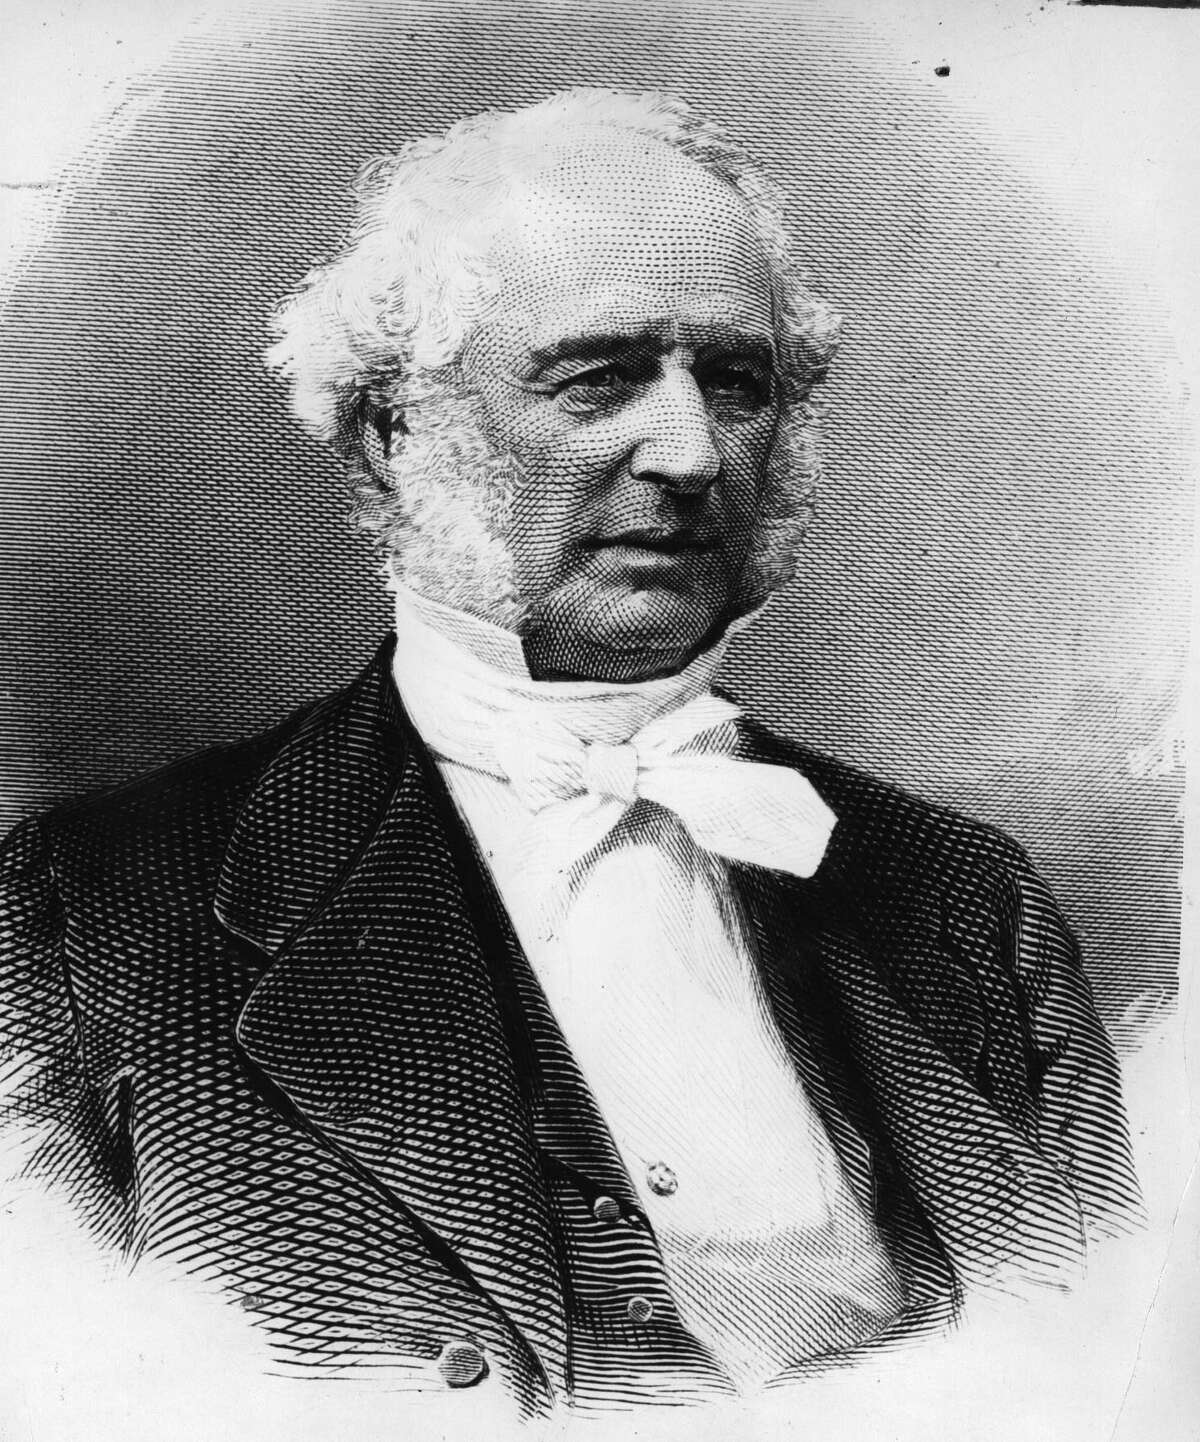 It's alleged Commodore Cornelius Vanderbilt, a dominant figure in American railroad history, became the inspiration for the potato chip. But it appears that story might be a fabrication.